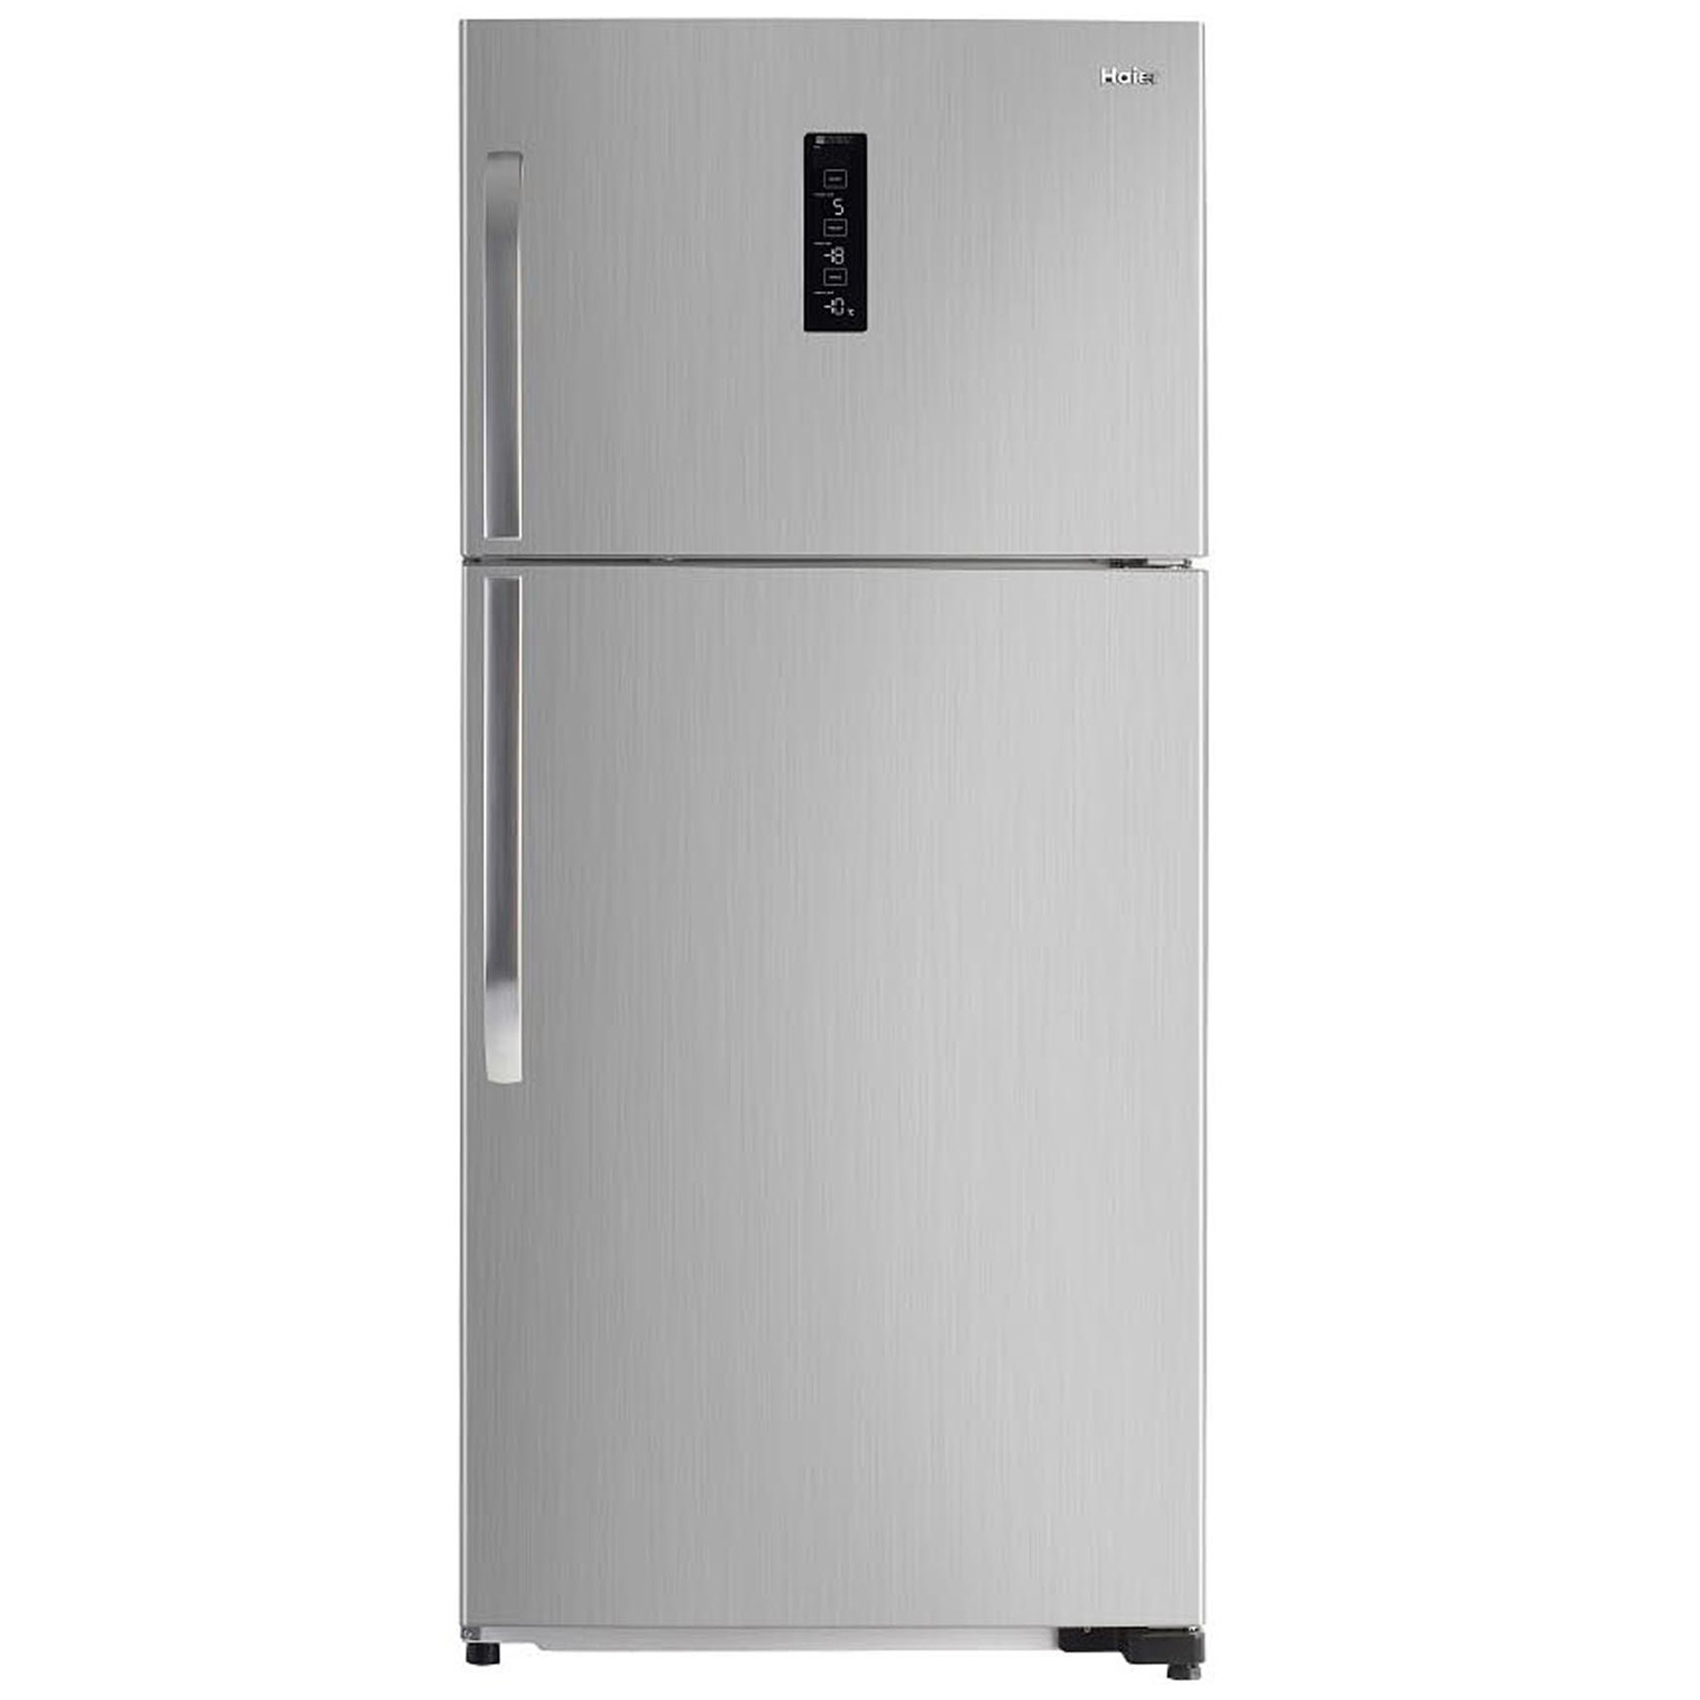 HAIER FRIDGE HRF-879CLAS 640L